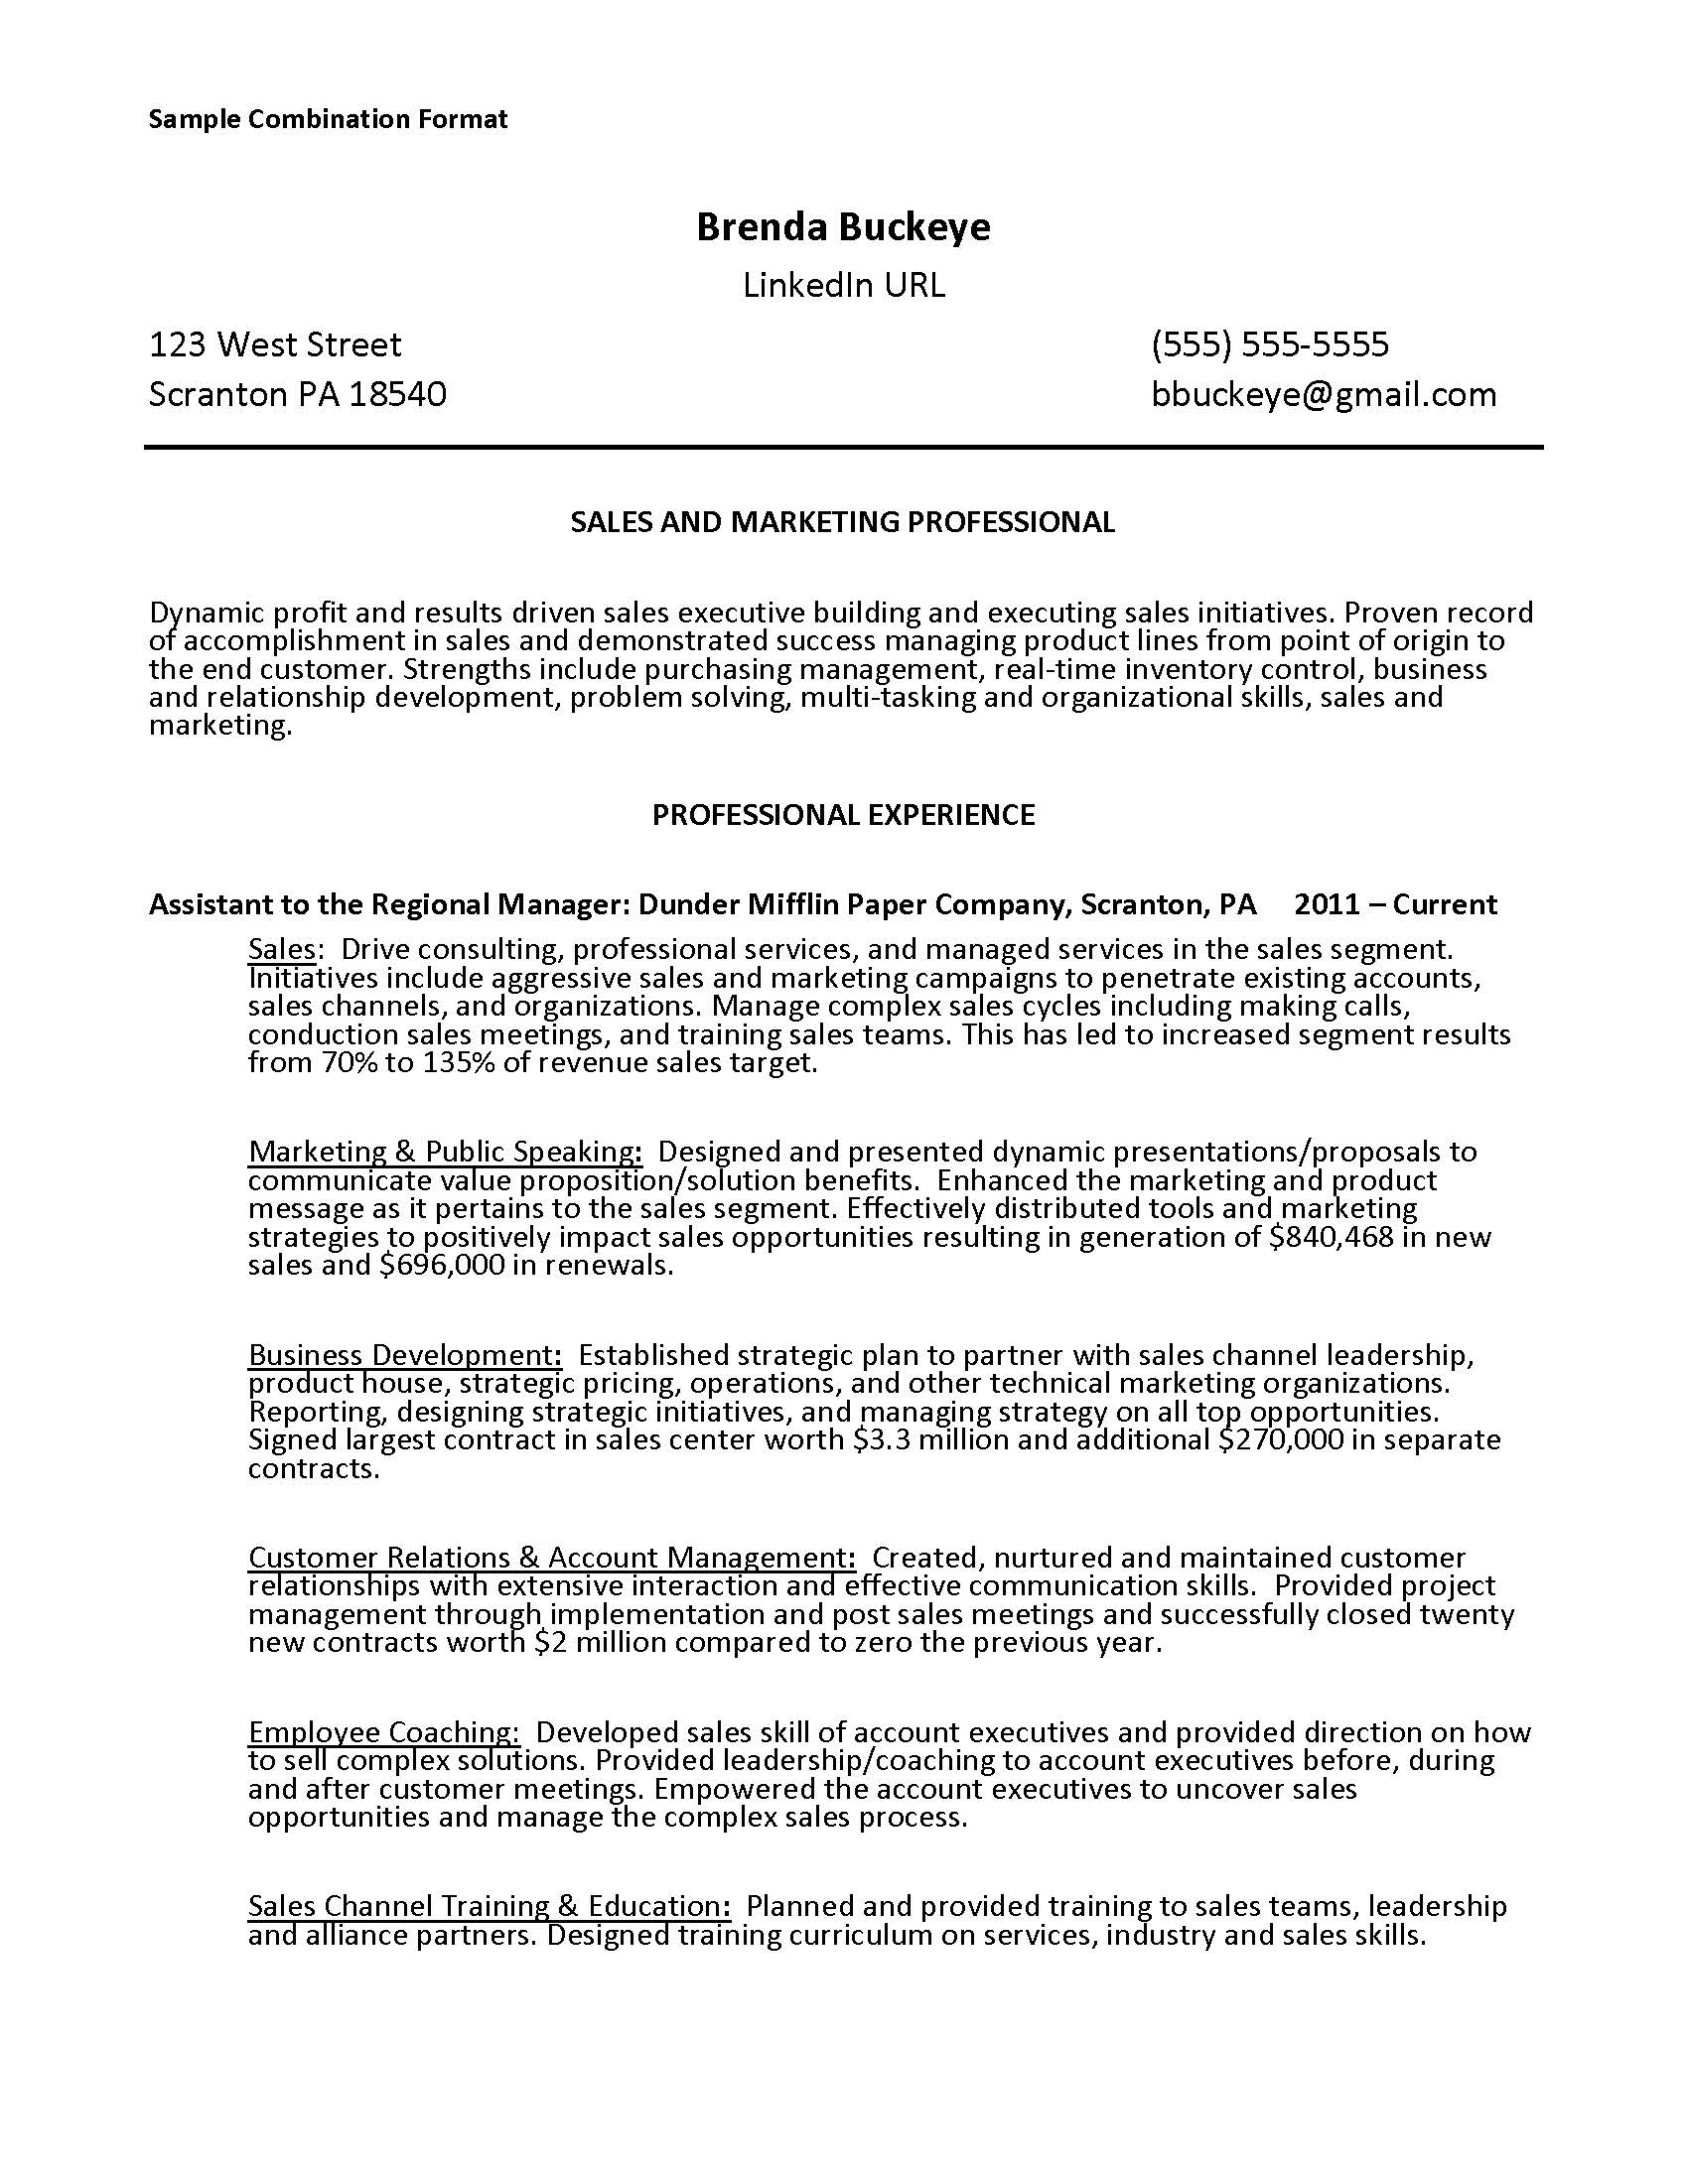 Resumes and cover letters  The Ohio State University Alumni Association